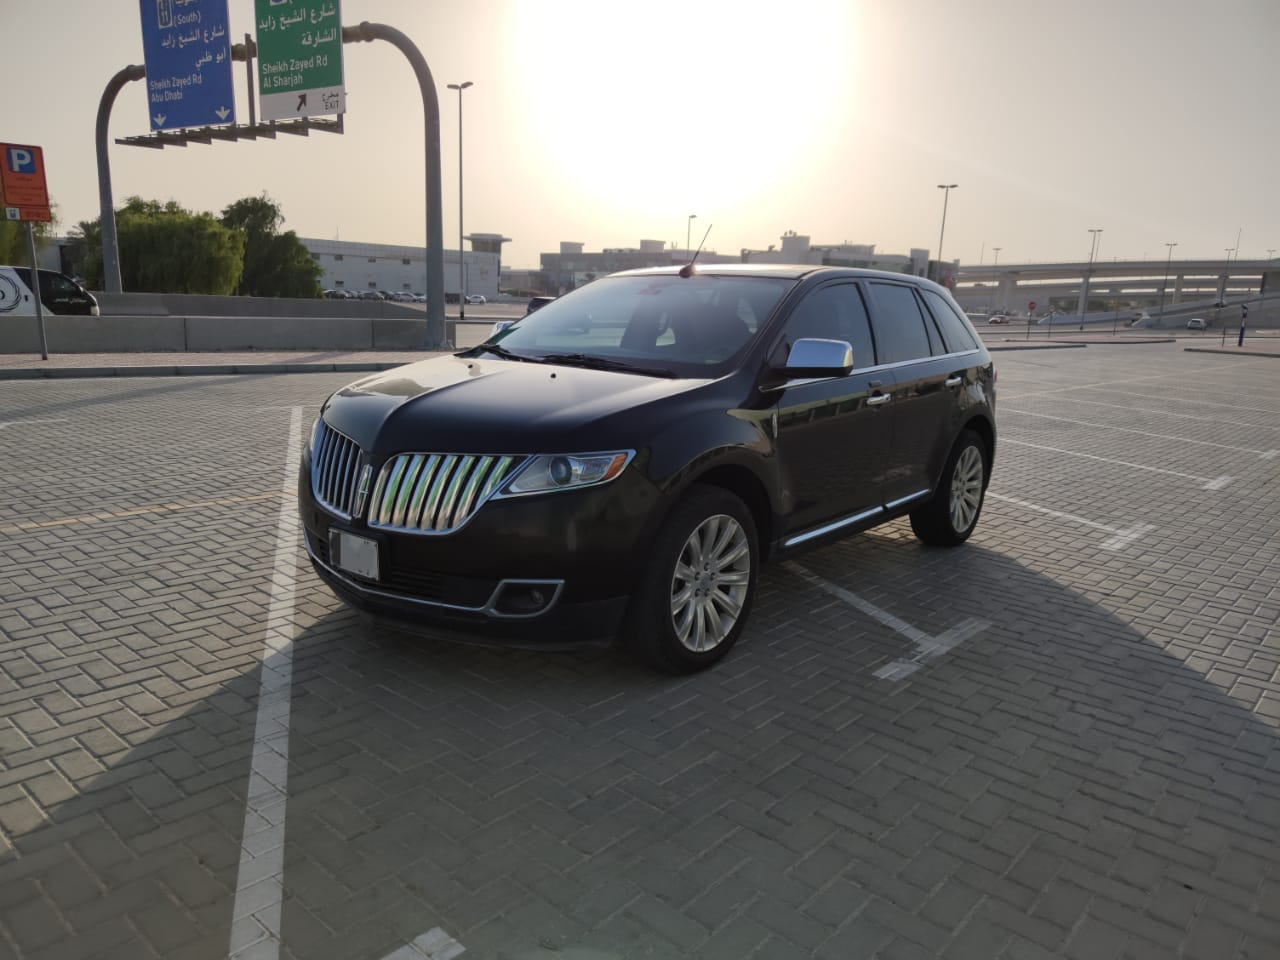 Used Lincoln MKX 2013 For Sale In Dubai